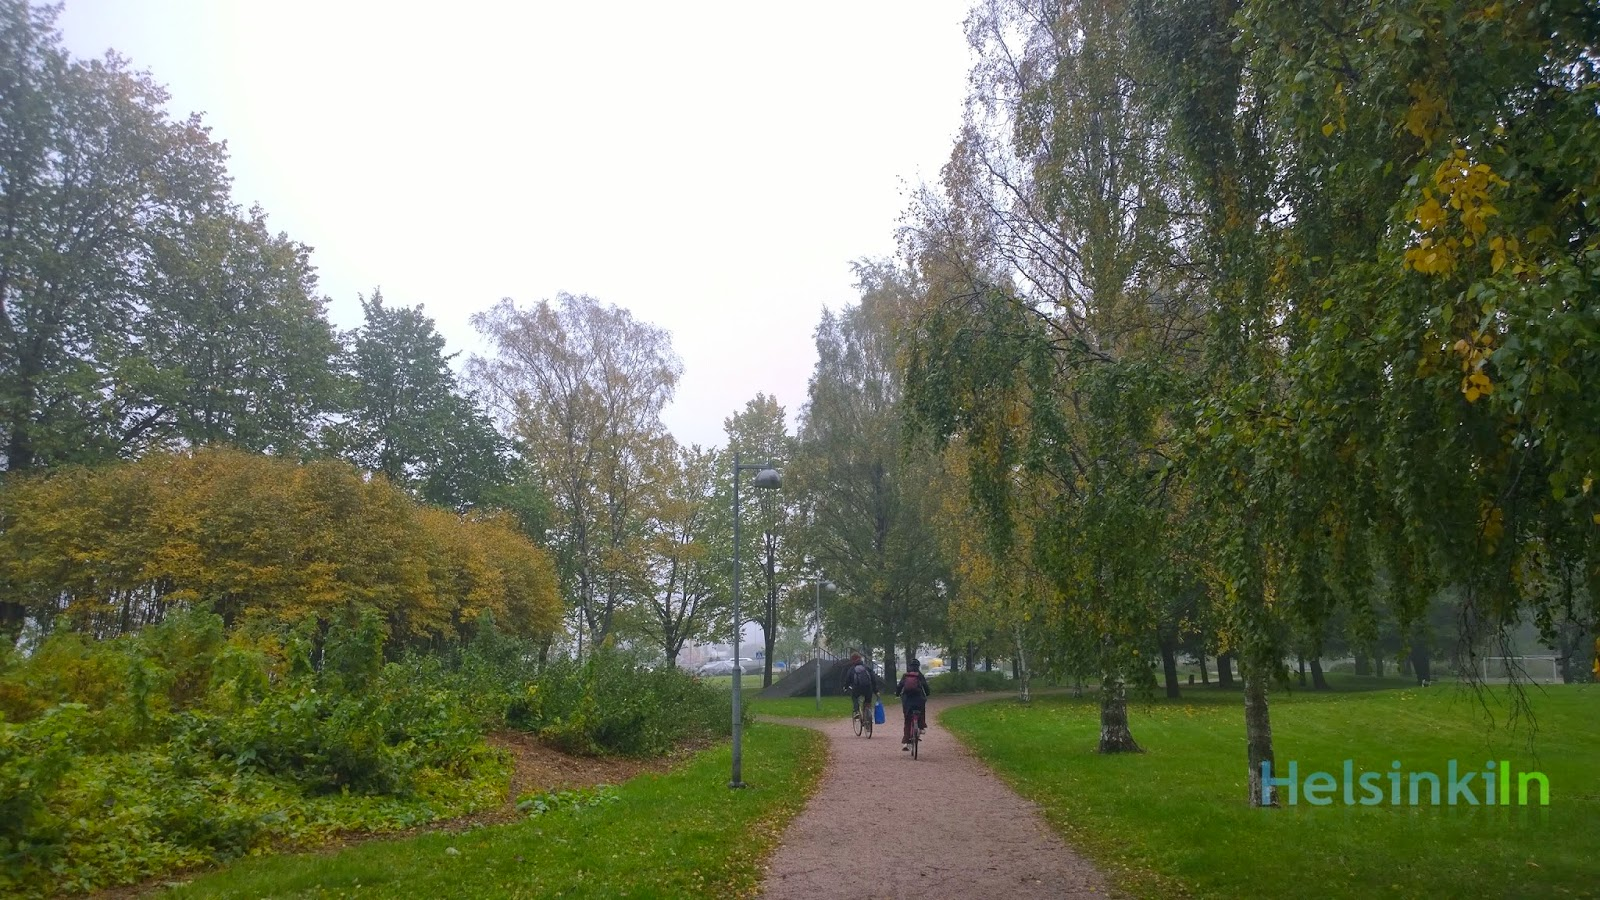 misty and cloudy day in Lauttasaari